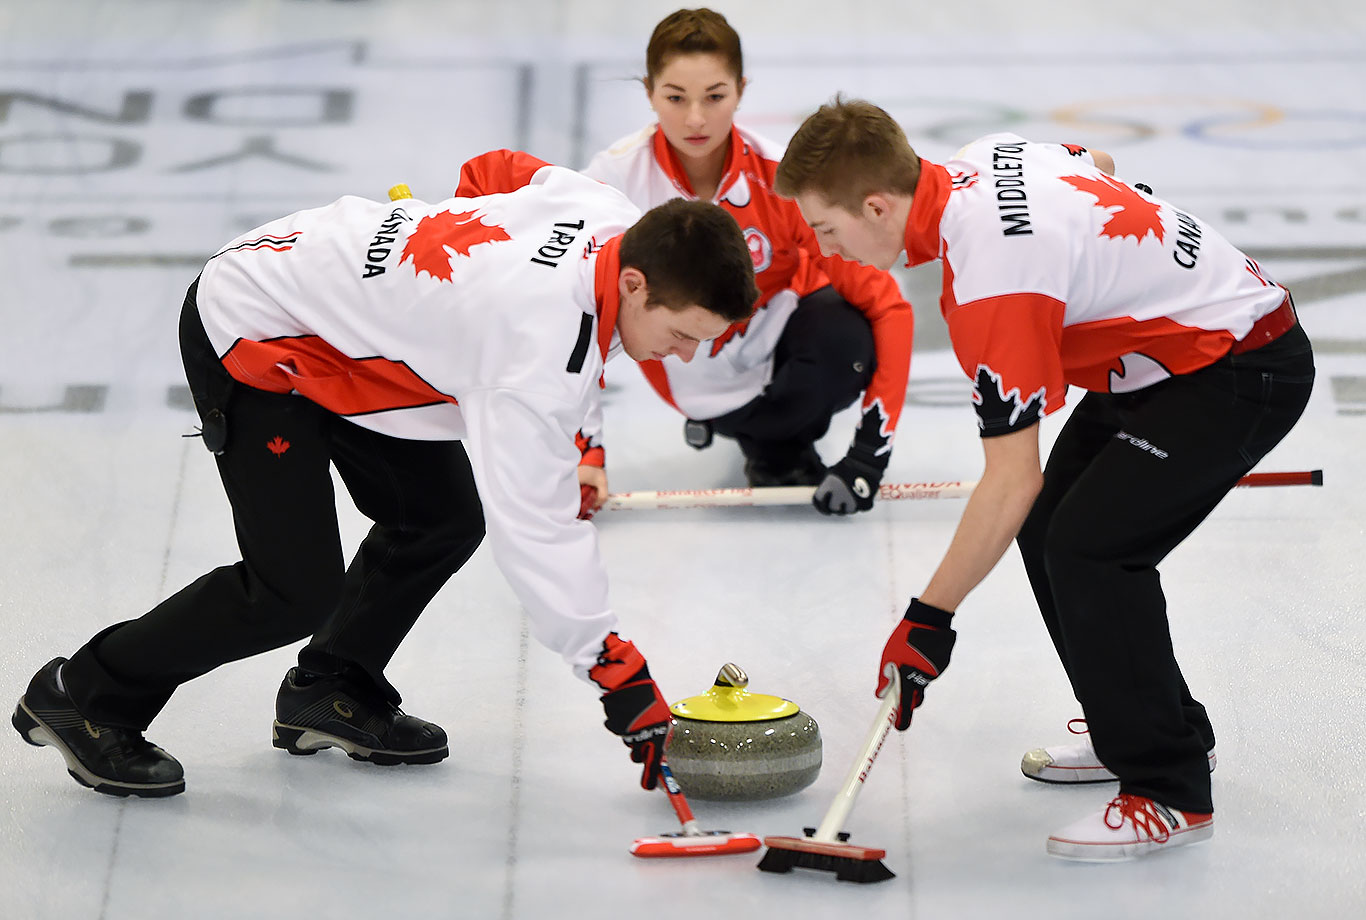 Tyler Tardi, Karlee Burgess and Sterling Middleton (CAN) compete in the Gold Medal Game of the Curling Mixed Team Finals at the Lillehammer Curling Hall on Feb. 17, 2016 during the Winter Youth Olympic Games in Lillehammer, Norway.